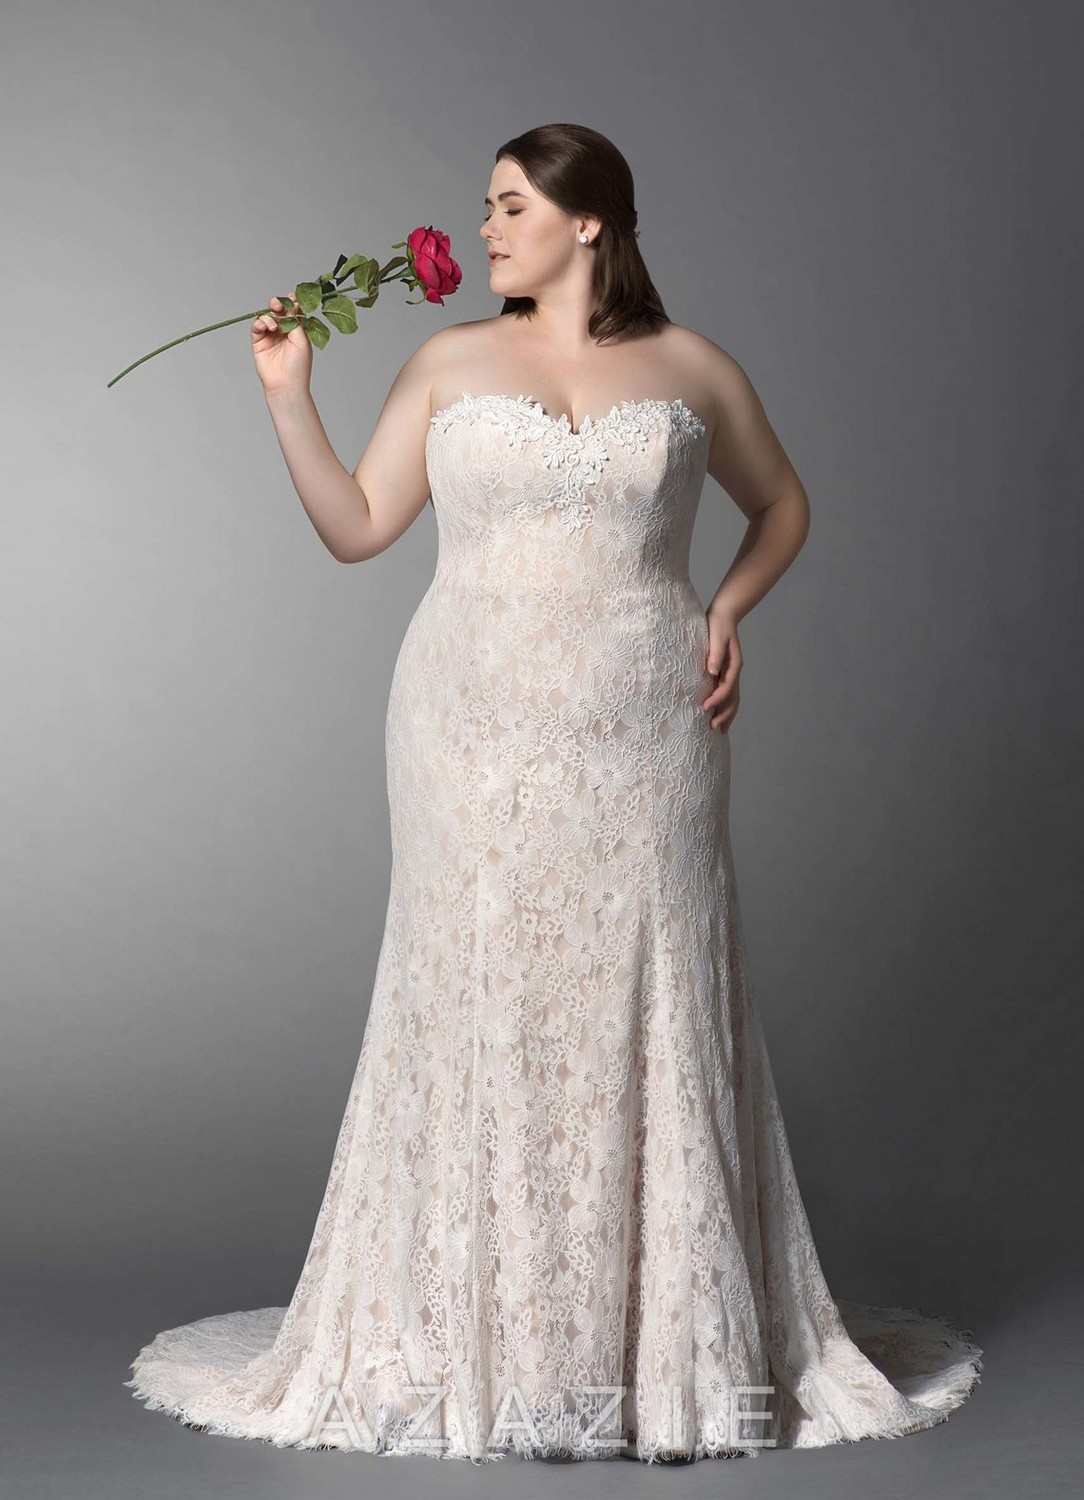 Catherine Plus Size Wedding Dress at Azazie